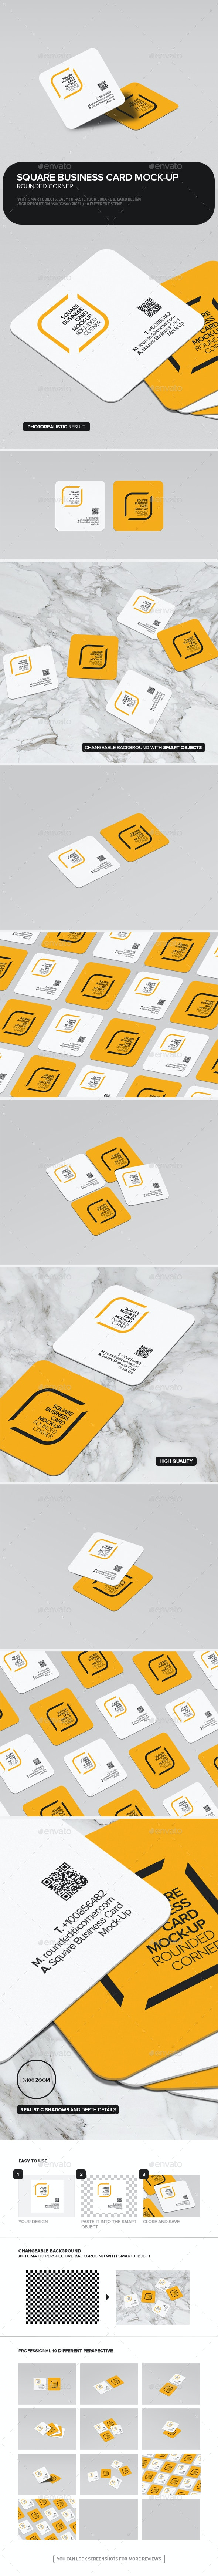 Square Business Card Mock-Up Rounded Corner - Business Cards Print